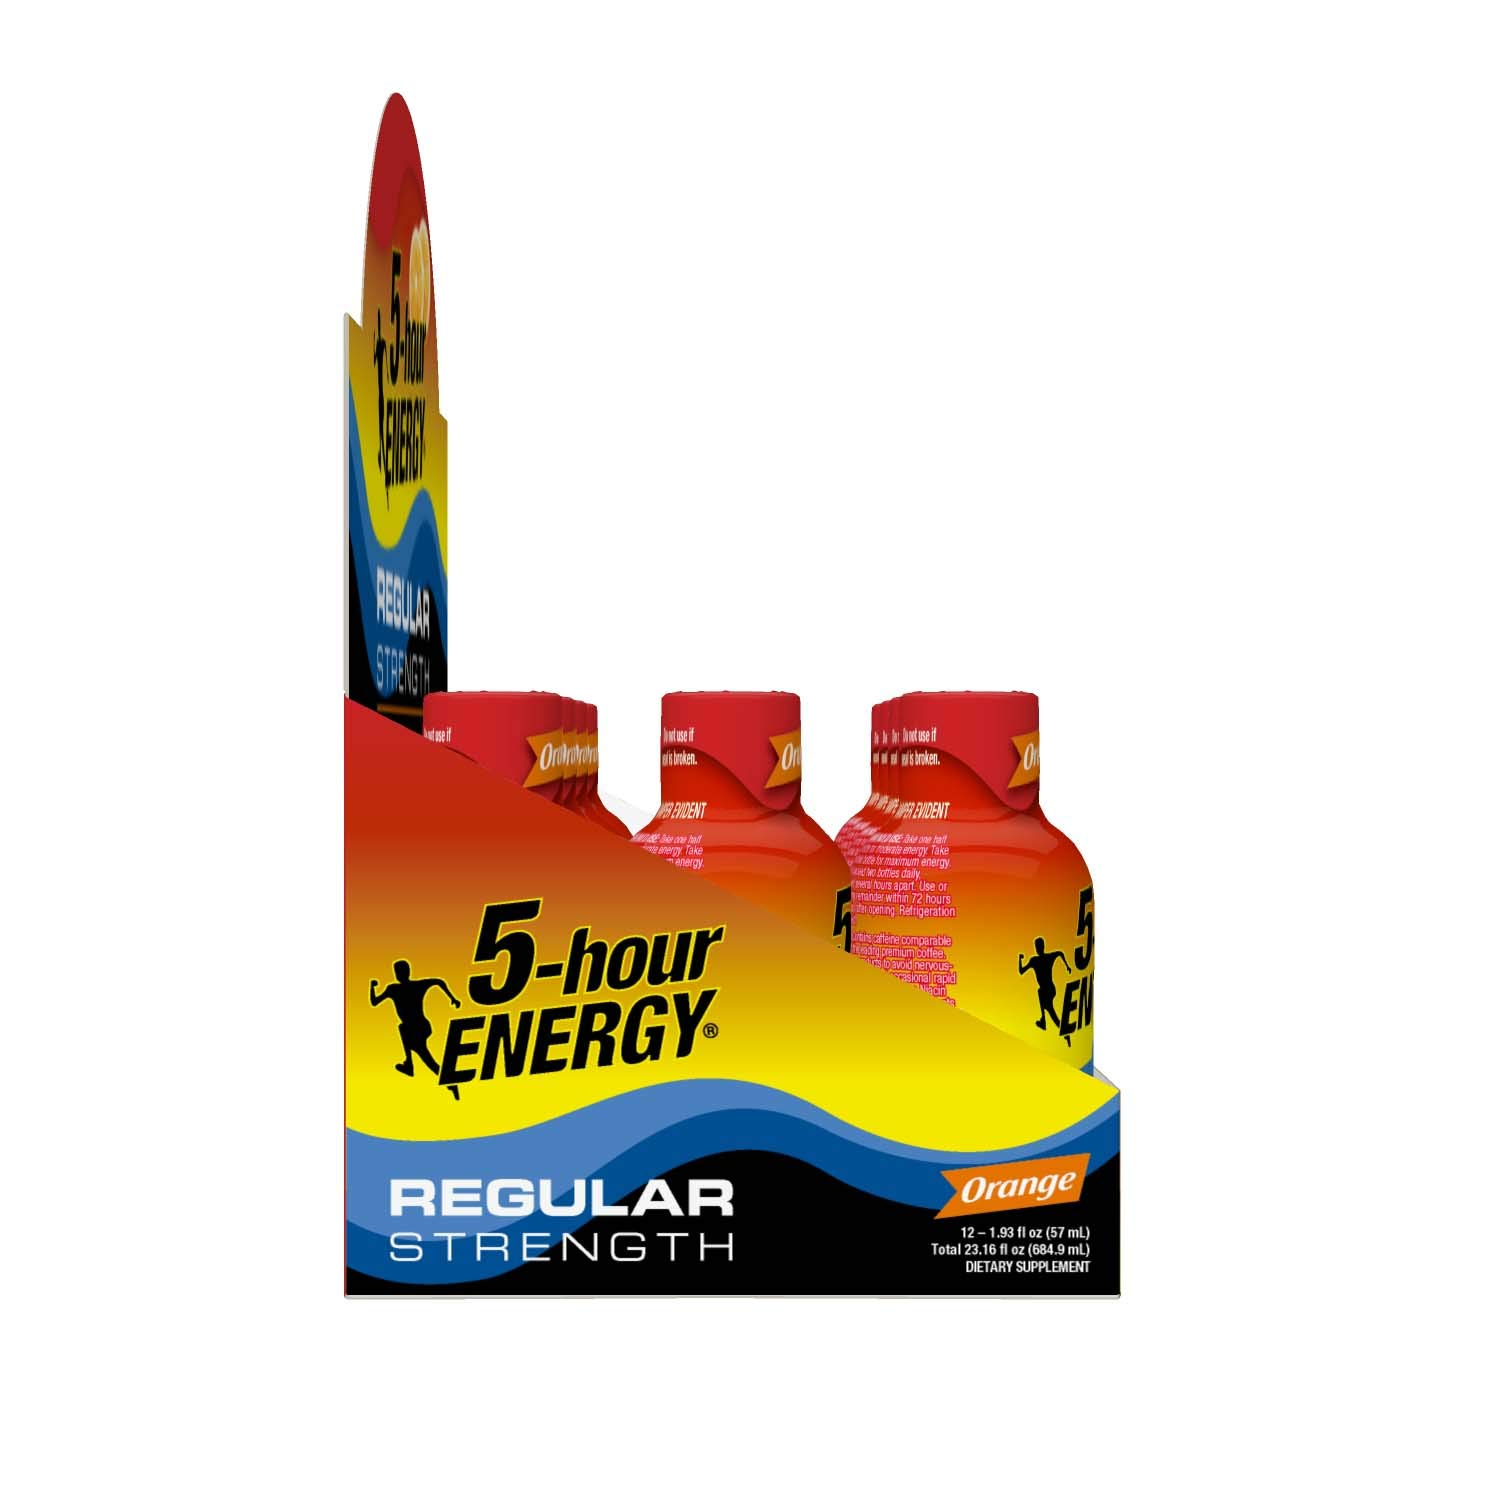 Regular Strength 5-hour ENERGY Shots – Orange Flavor – 12 Count